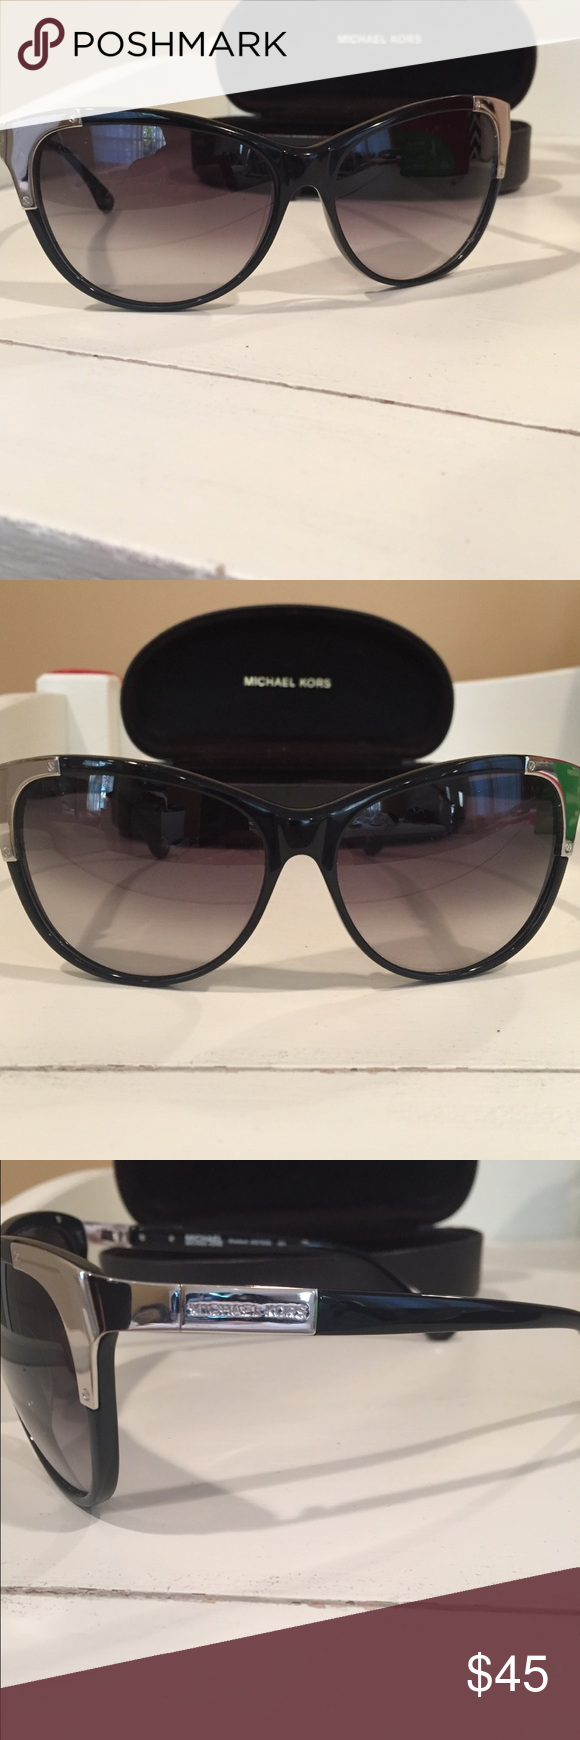 MICHAEL Michael Kors Sunglasses Authentic cat eye sunglasses. Never worn. Comes with case and cloth. MICHAEL Michael Kors Accessories Sunglasses